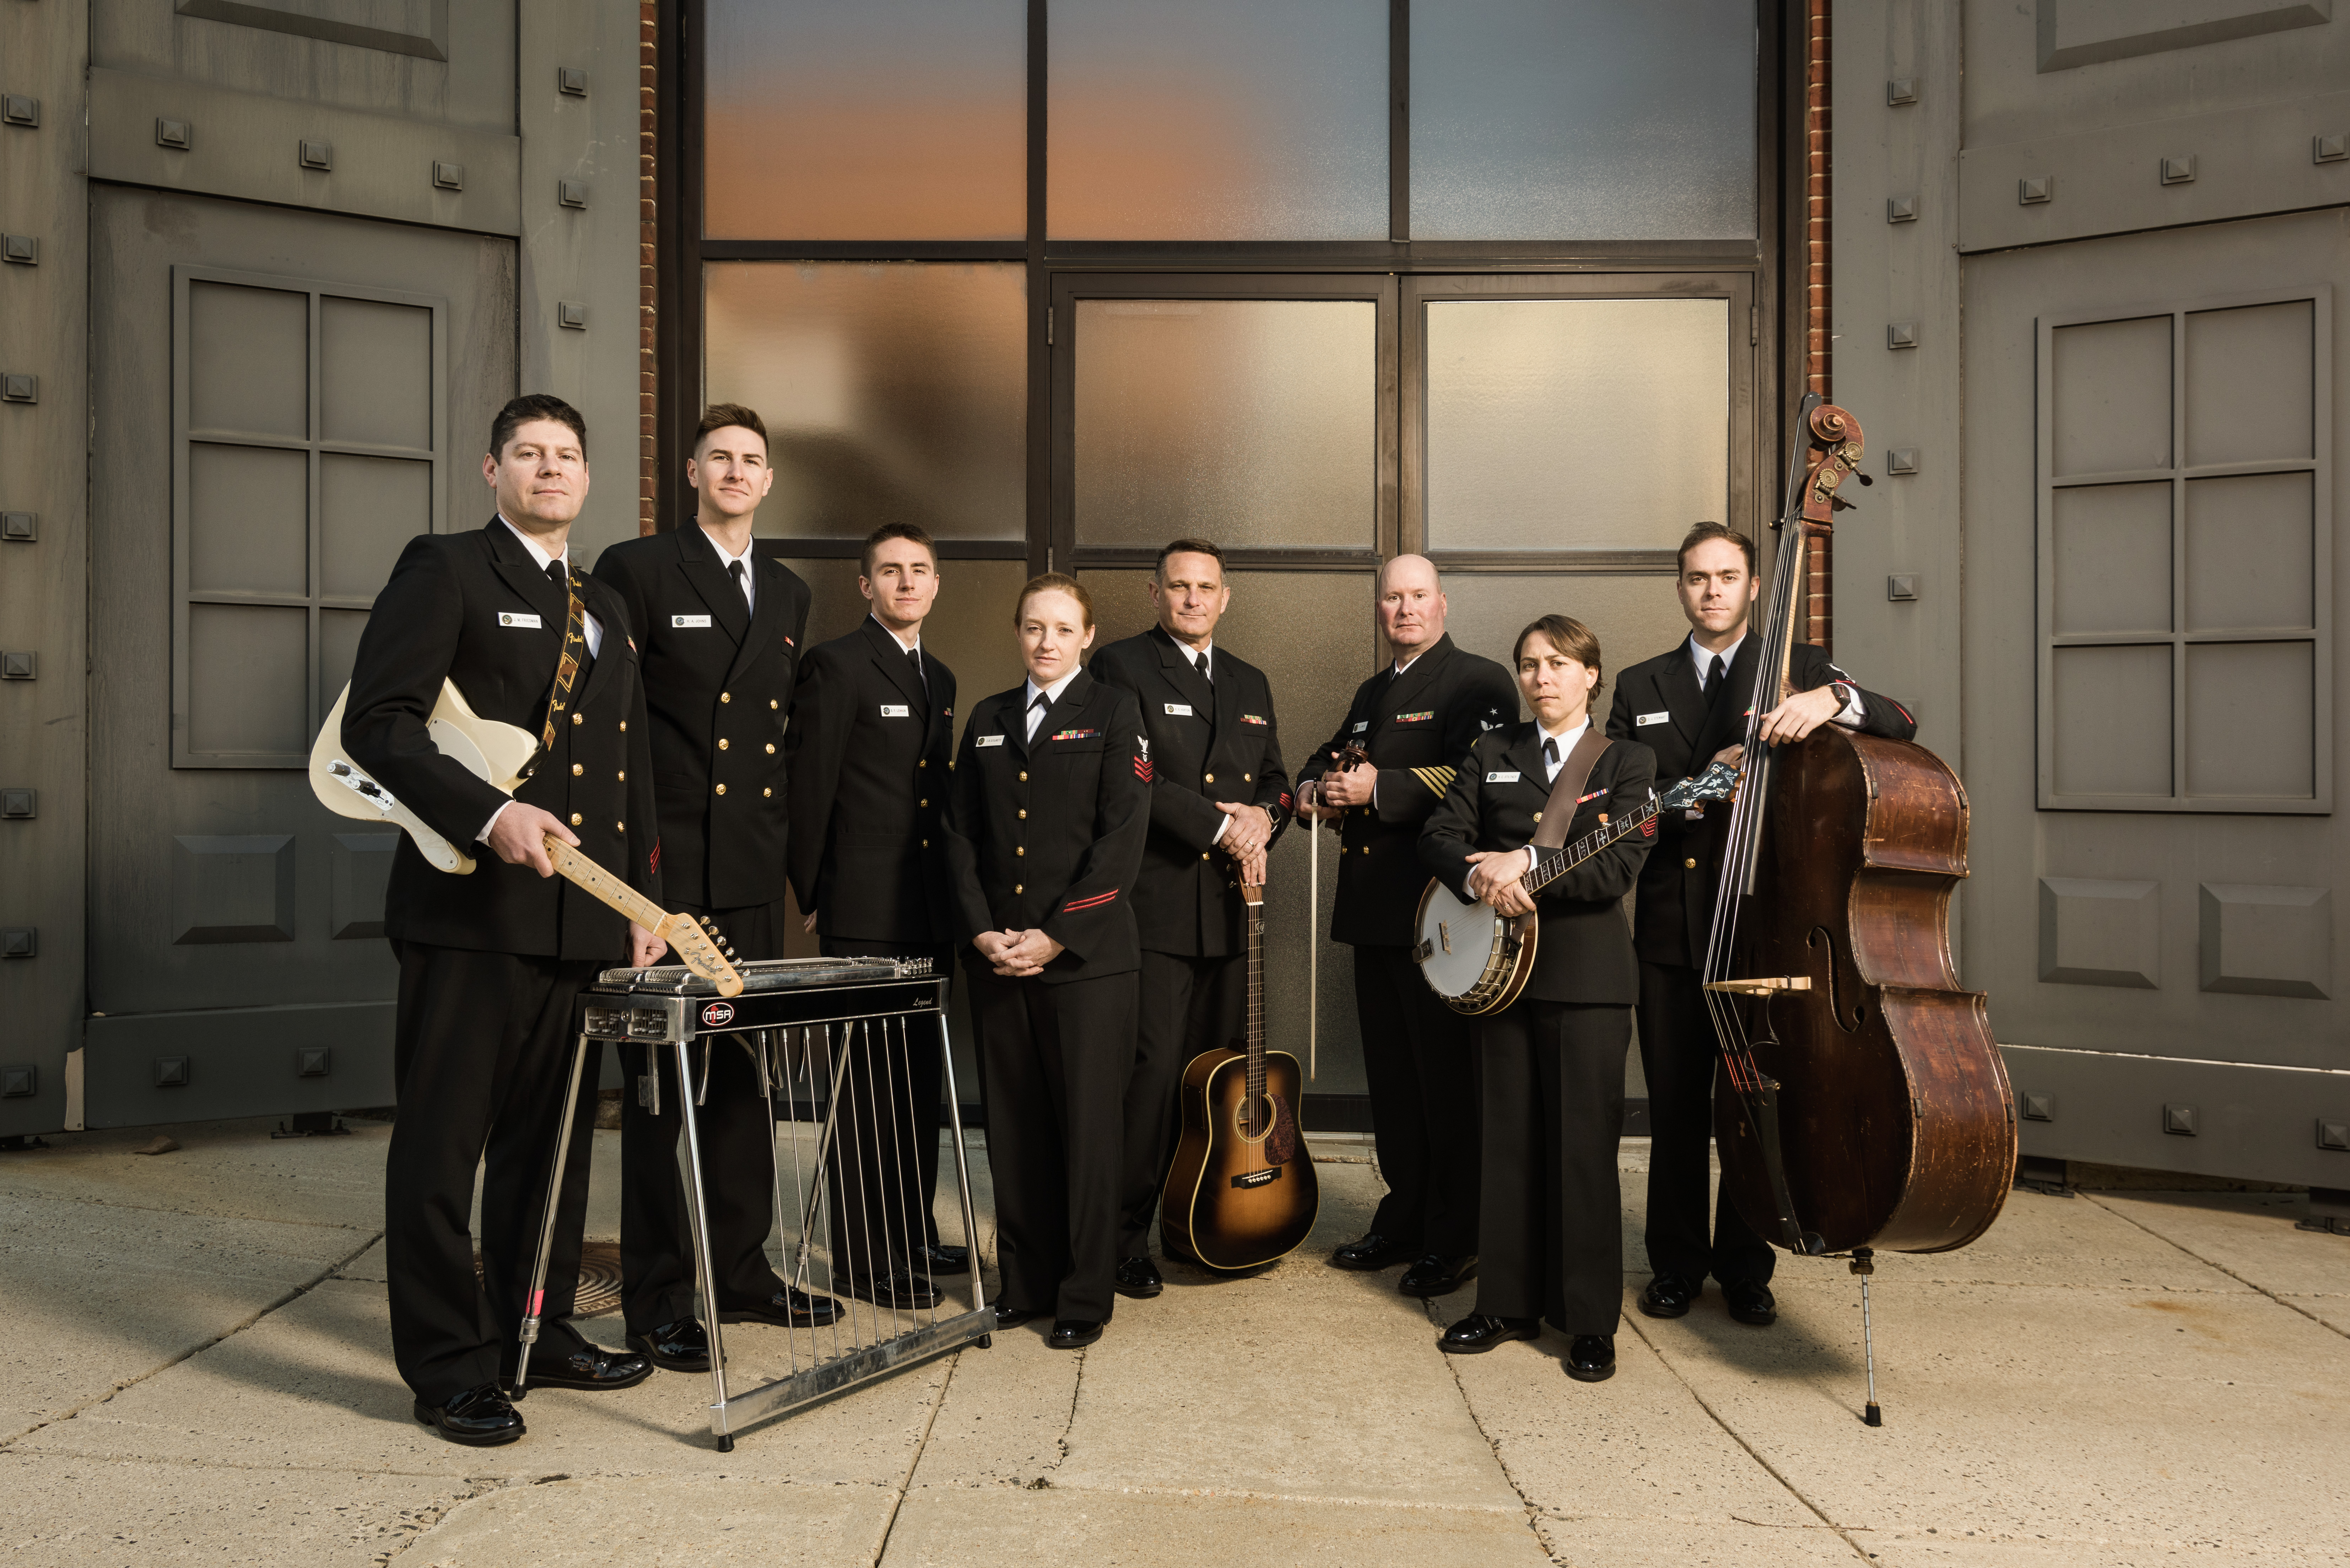 FREE CONCERT: The U.S. Navy Band Country Current